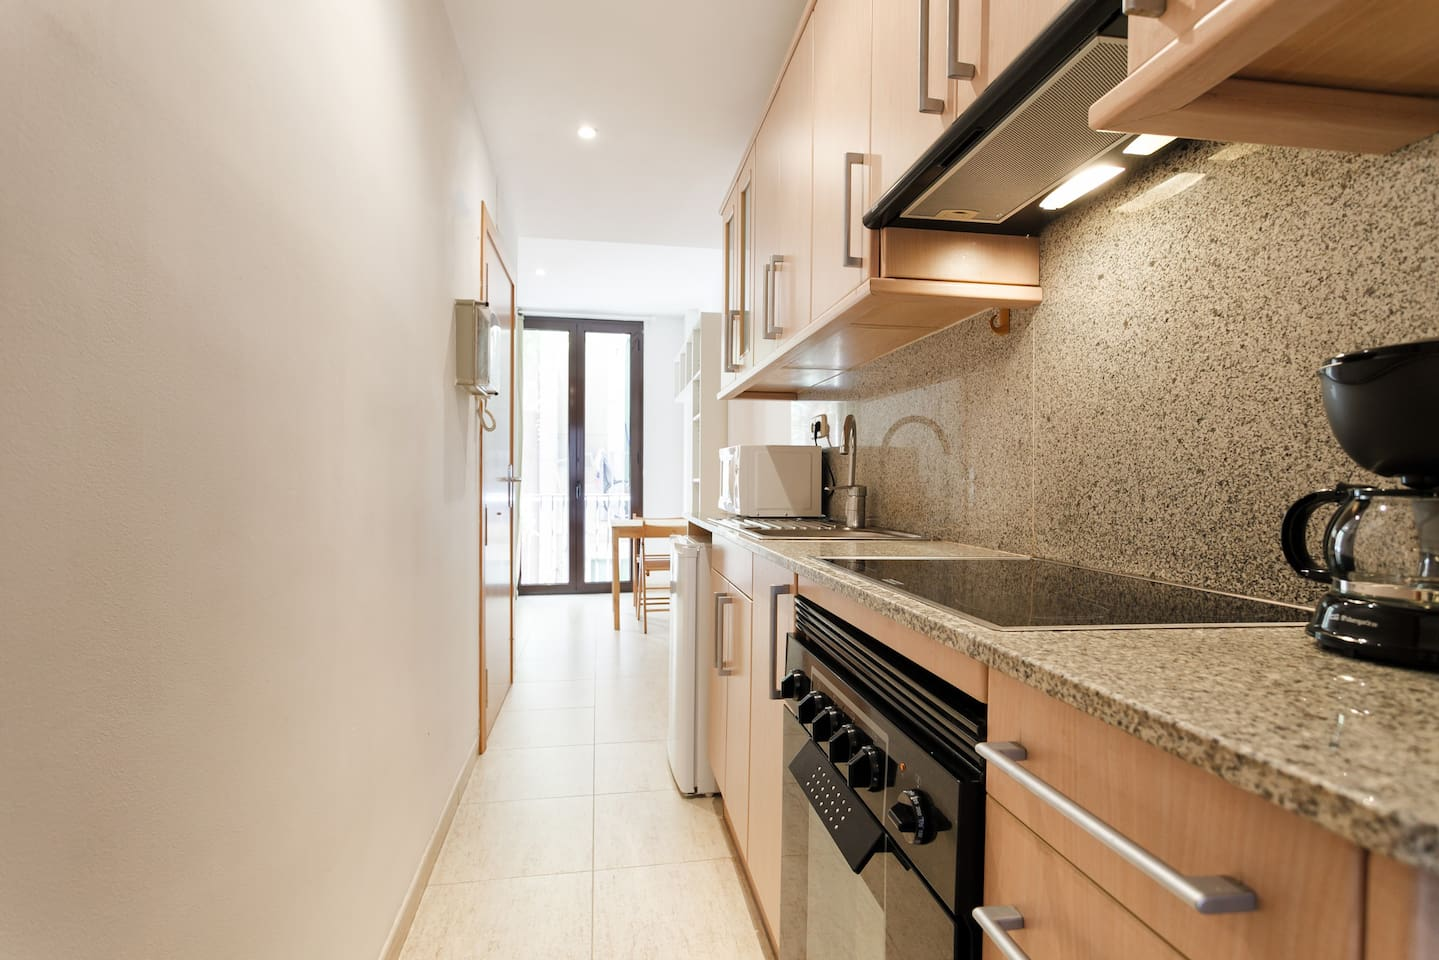 Hallway + Modern Kitchen( refrigerator ,coffee maker, kettle, microwave.oven, etcc..)